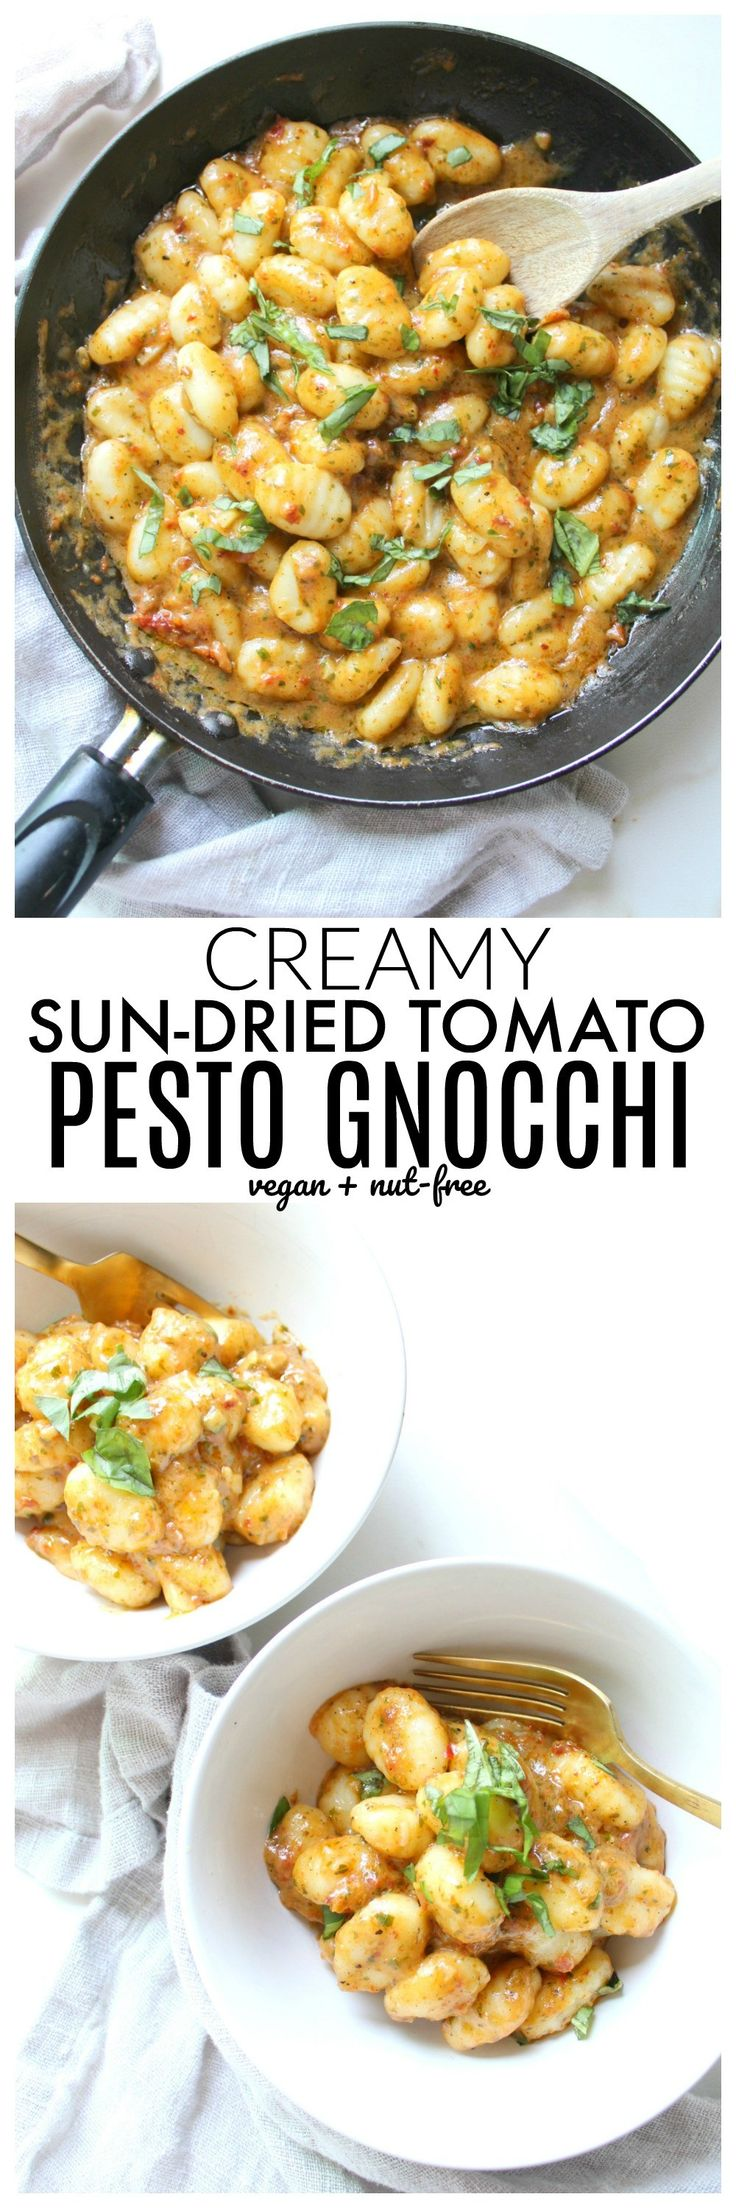 This Creamy Vegan Sun-Dried Tomato Pesto Gnocchi is a flavor explosion with fresh basil, marinated tomatoes and garlic. Ready in just 20 minutes!   ThisSavoryVegan.com